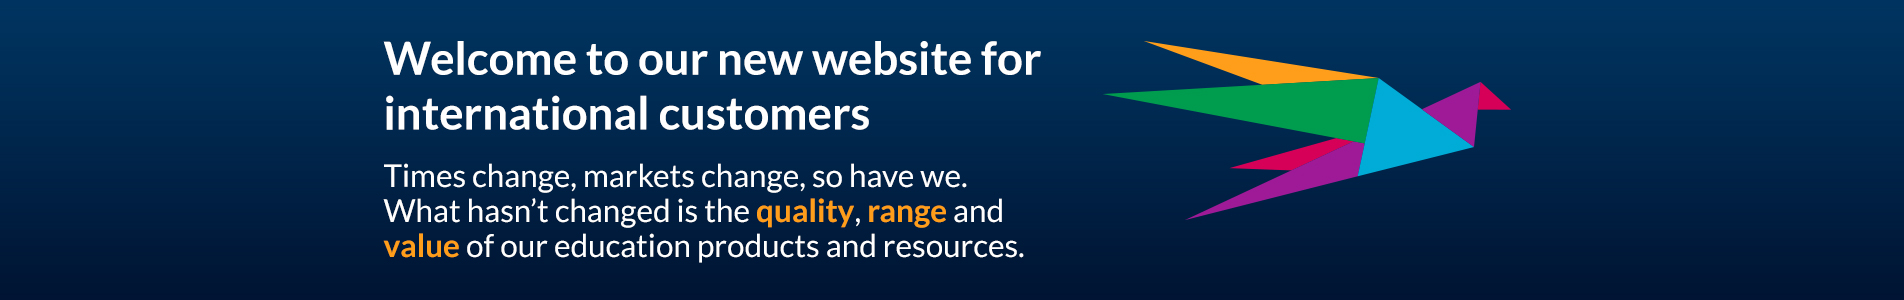 Welcome to our new website for international customers - Times change, markets change, so have we. What hasn't changed is the quality, range and value of our education products and resources.